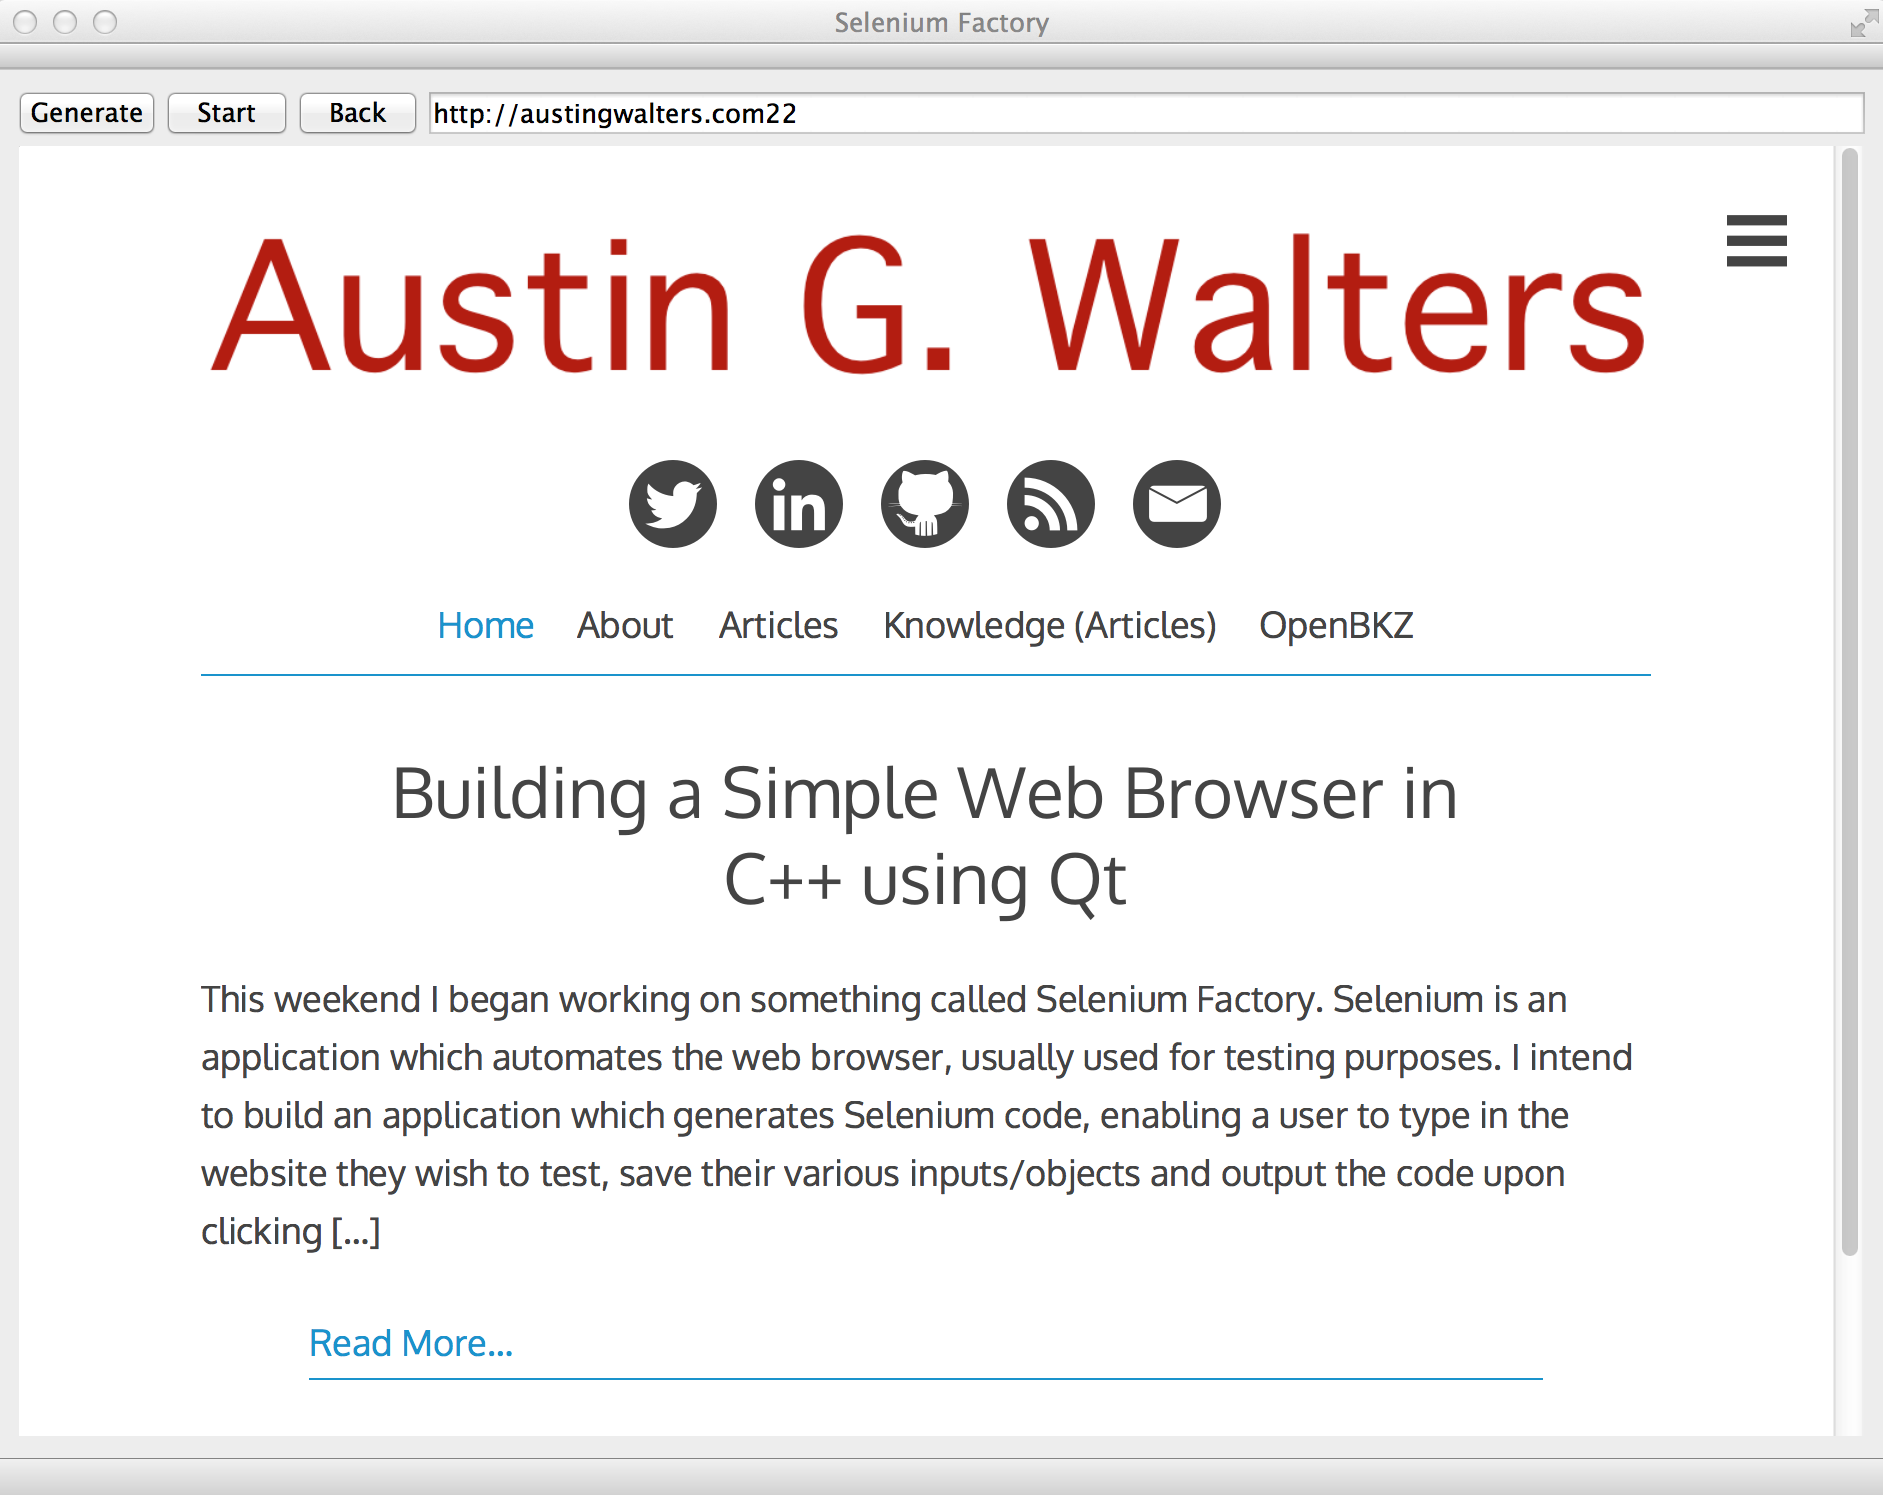 Building a Simple Web Browser in C++ using Qt - Austin G